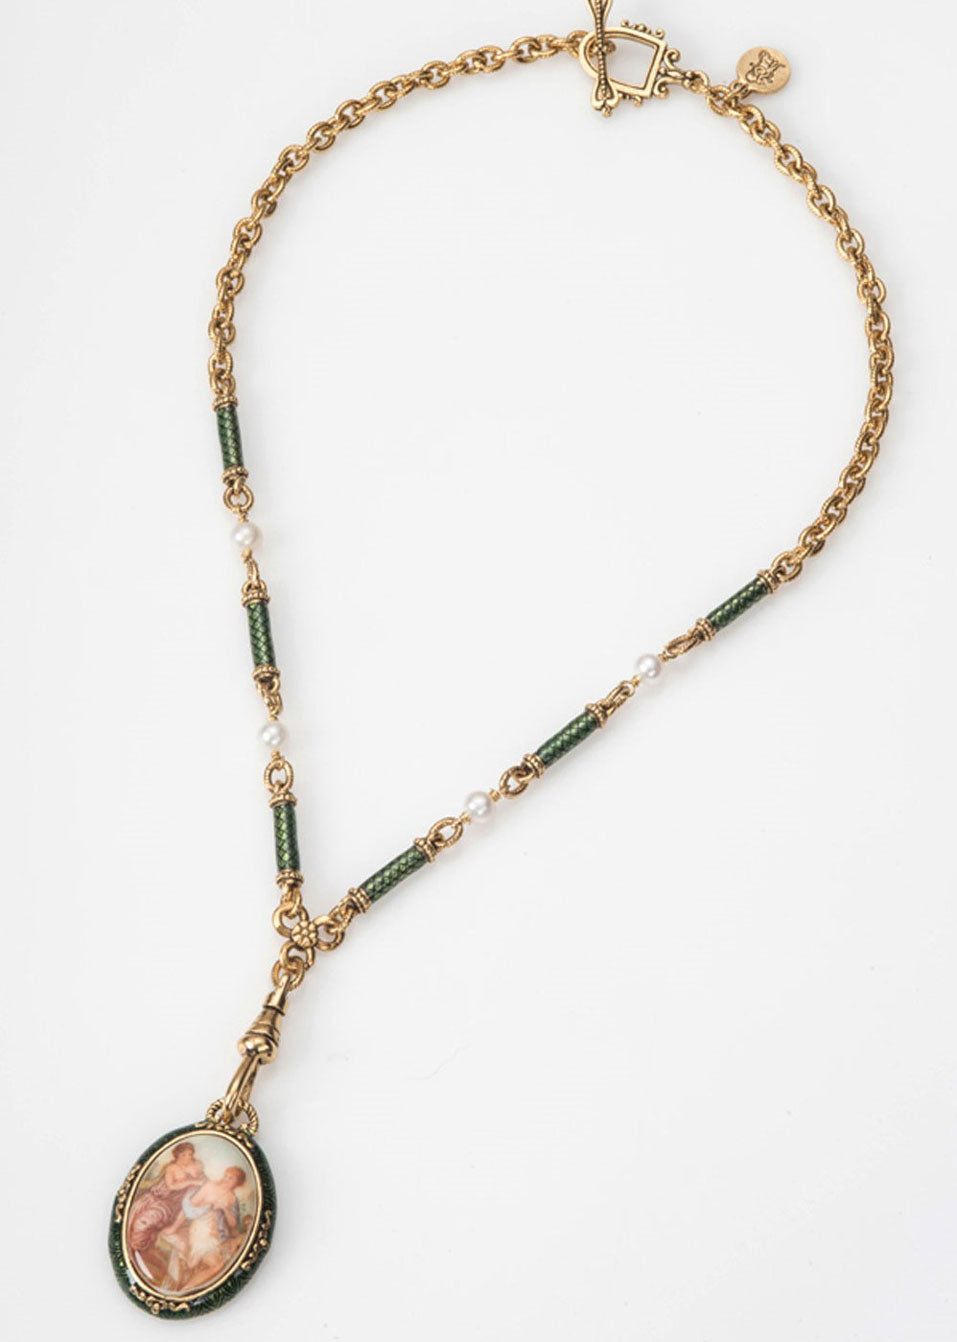 Emerald Green Enamel Fob Necklace